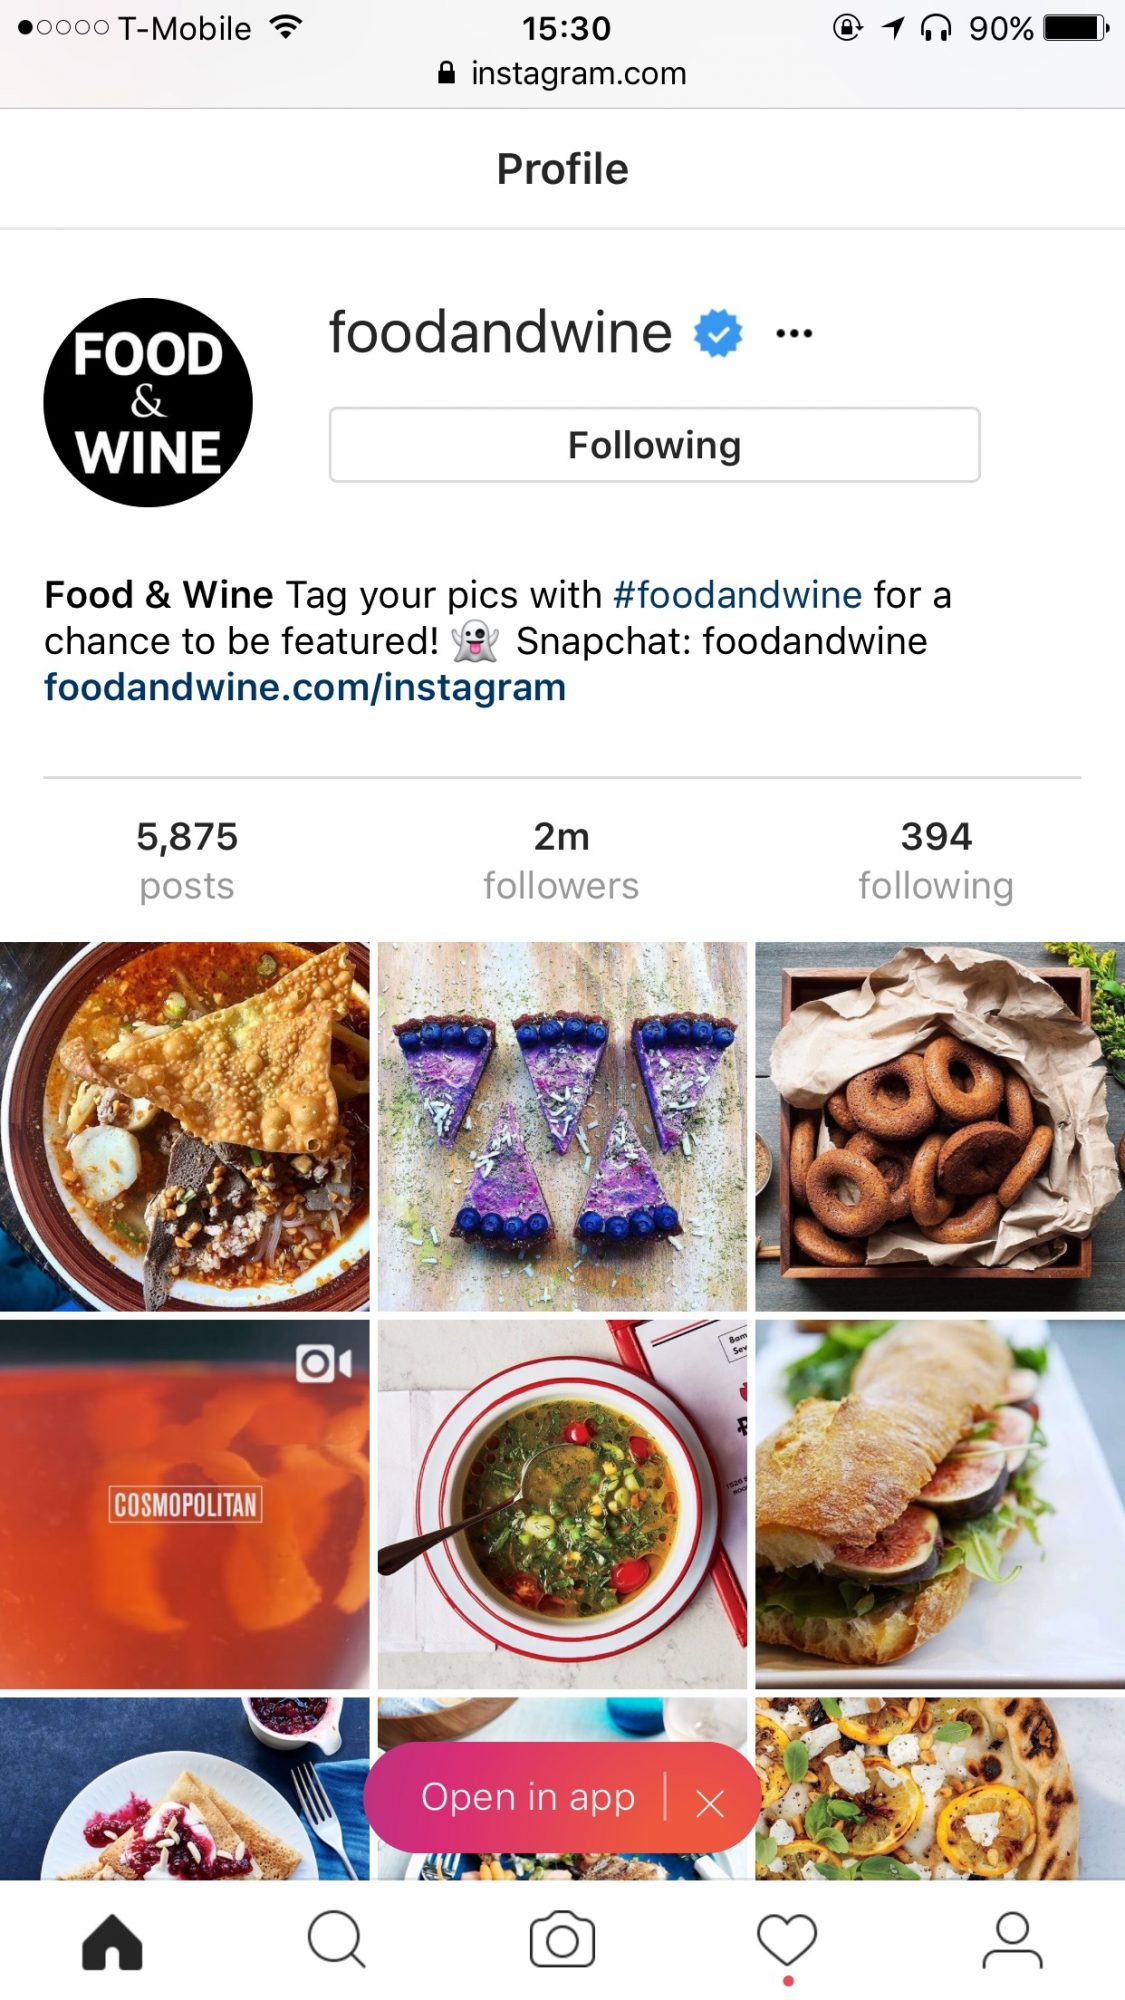 Instagram in a mobile browser window